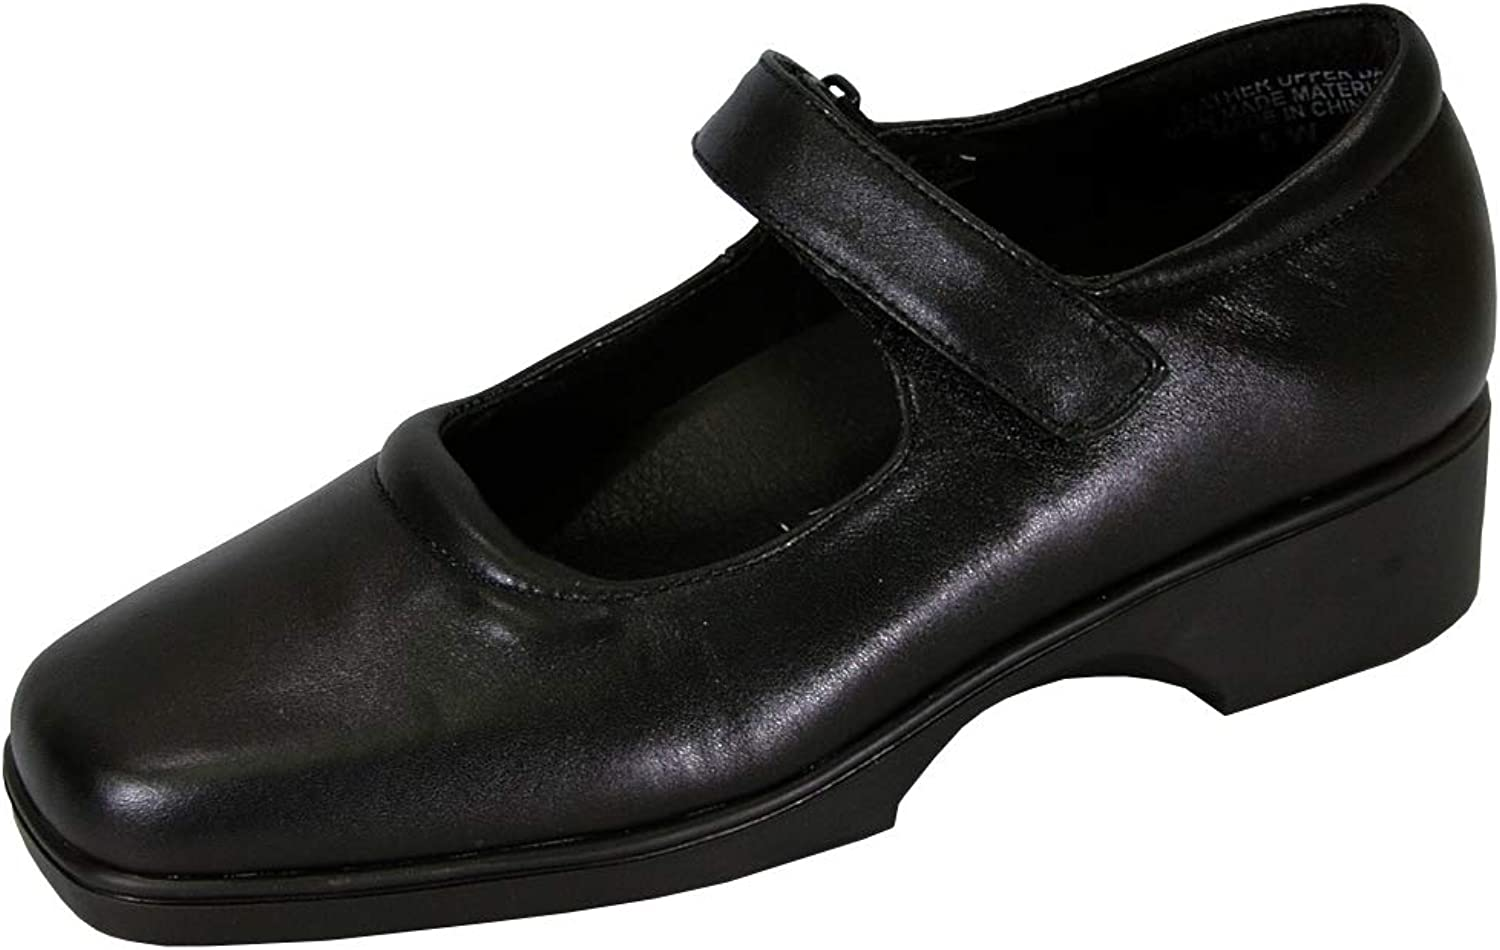 24 Hour Comfort Uma Women Wide Width Leather Mary Jane Style shoes